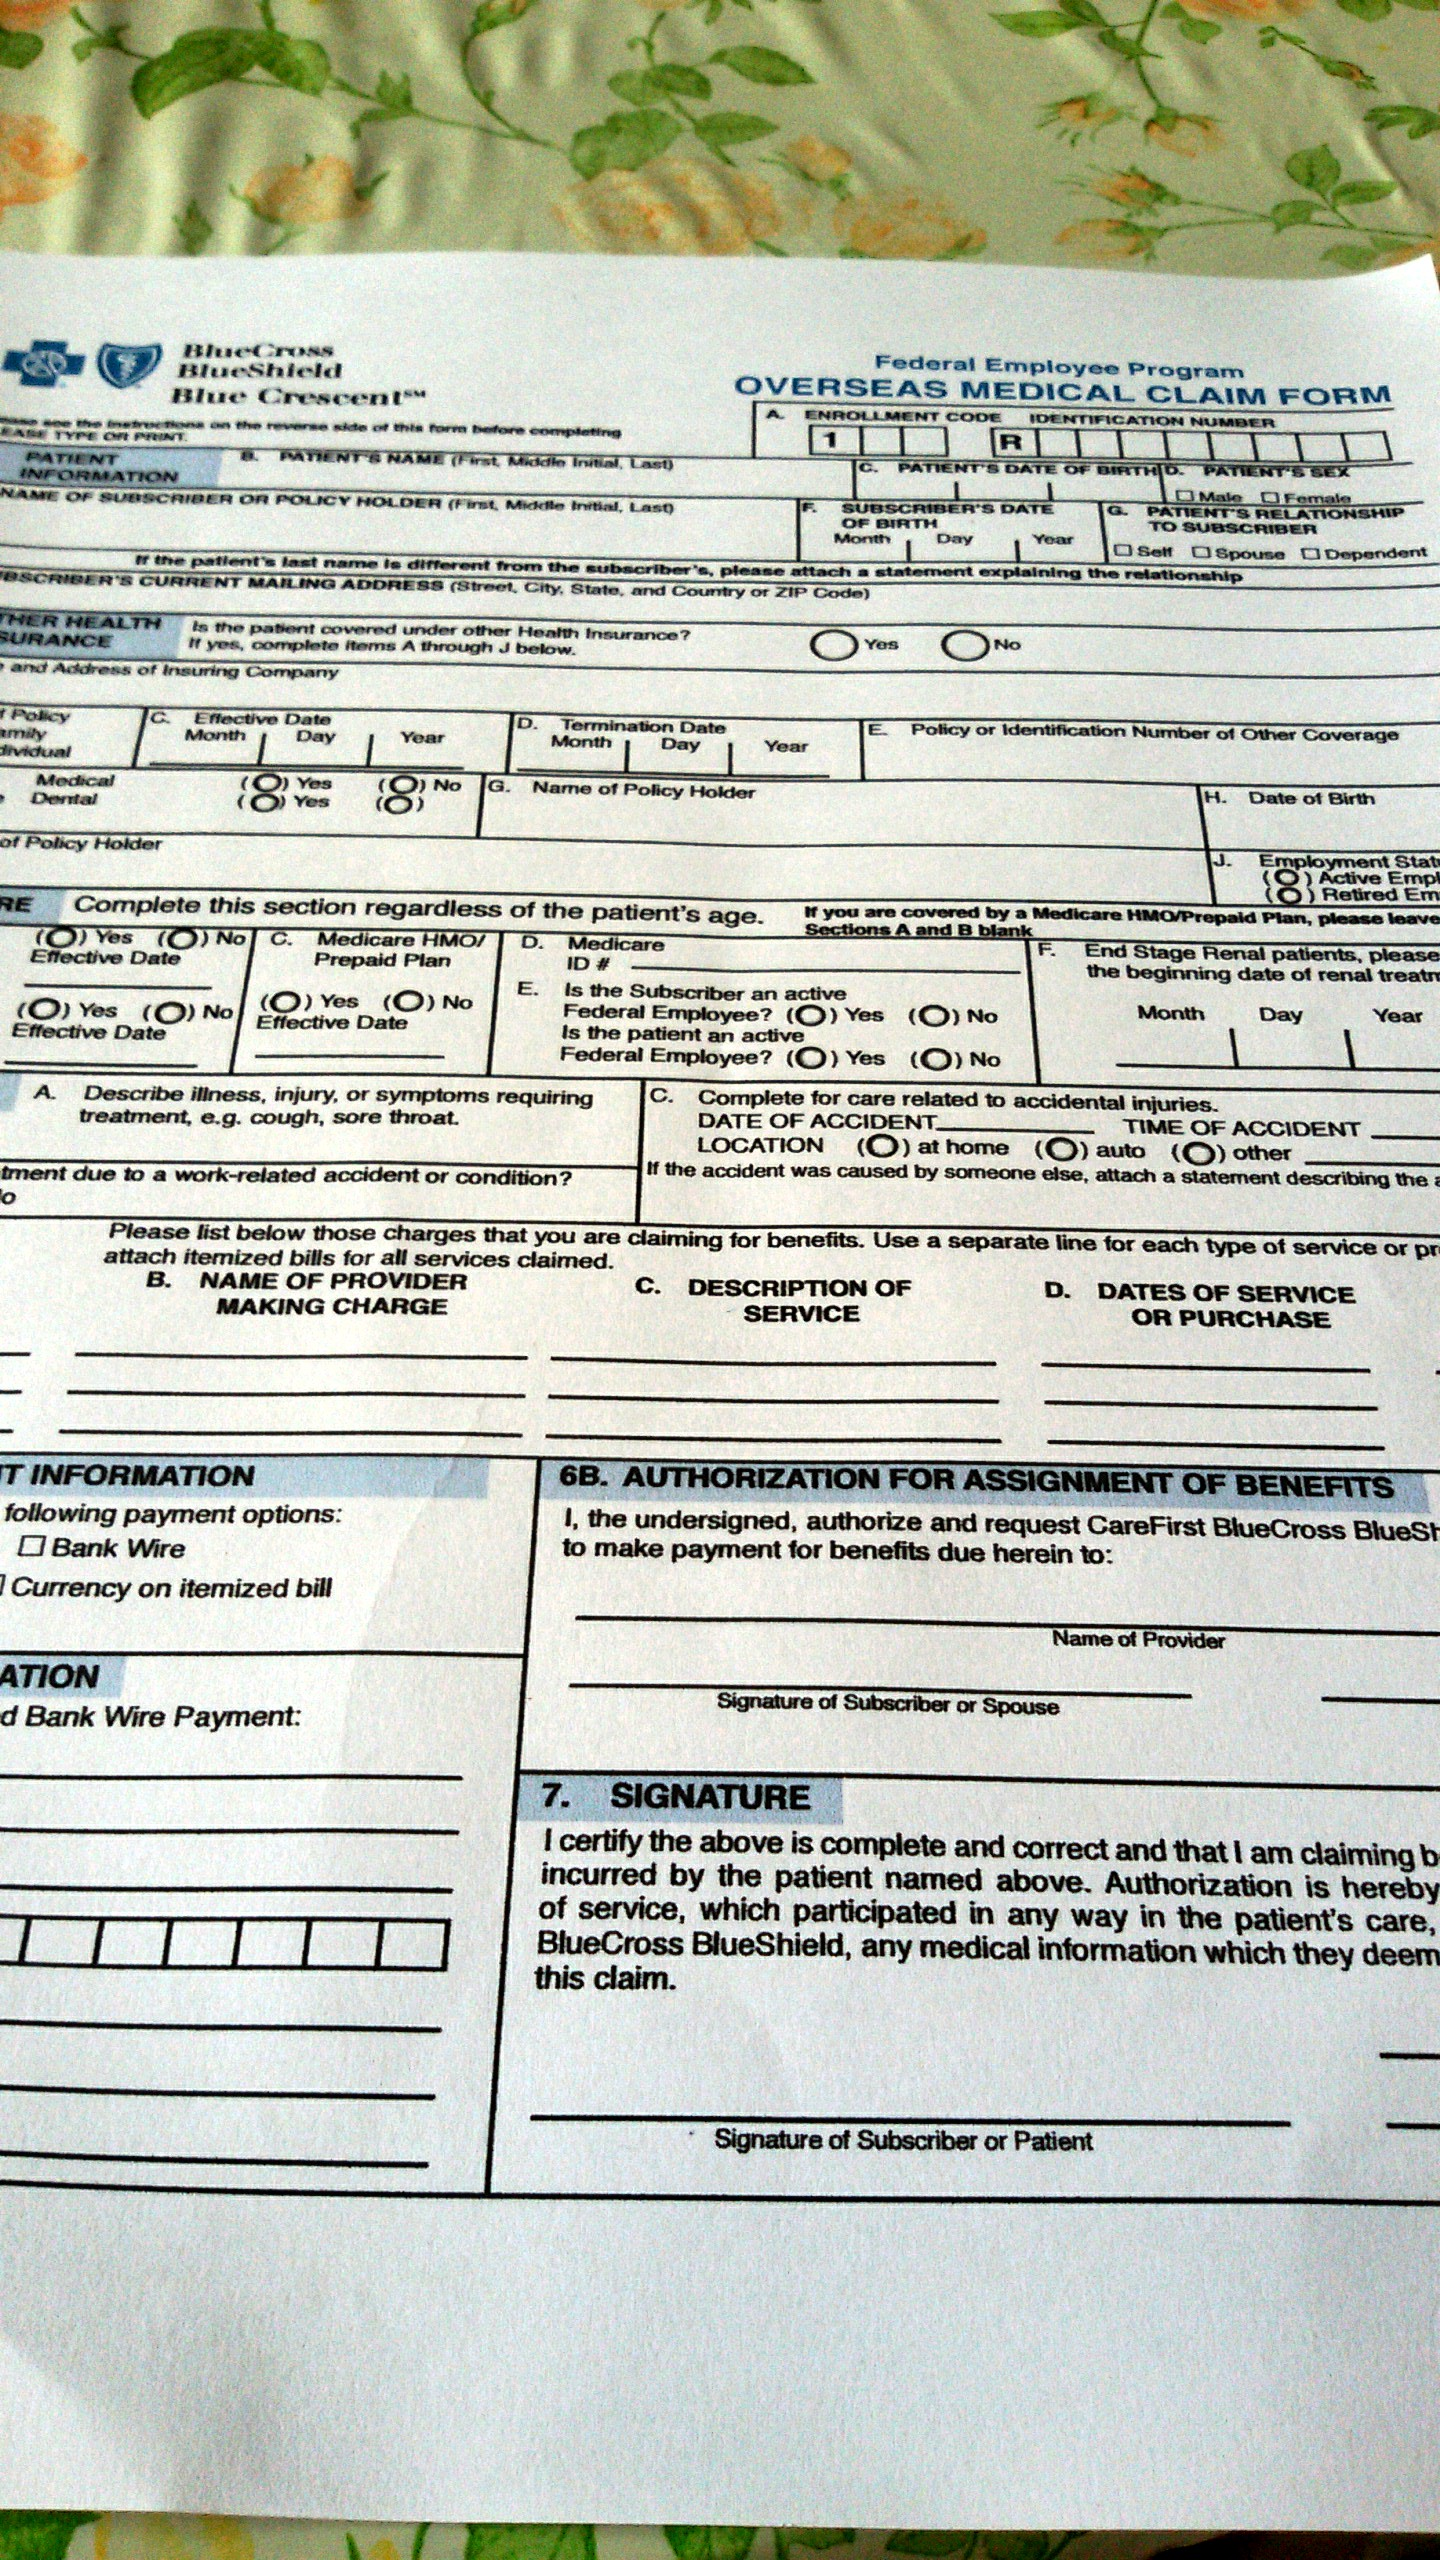 My Overseas Medical Claim Forms - Persona Paper on medical coding, medical questionnaires, medical physical exam form, veterans administration forms, medical consent form, medical insurance form sample, workers' compensation claims forms, medical history form, prior authorization forms, medical id cards, medical examination form, medical insurance verification form, income tax forms, cash register forms, agreement forms, personal injury forms, medical clearance for surgery form, hipaa patient consent forms, medical insurance coverage, medical certificates,